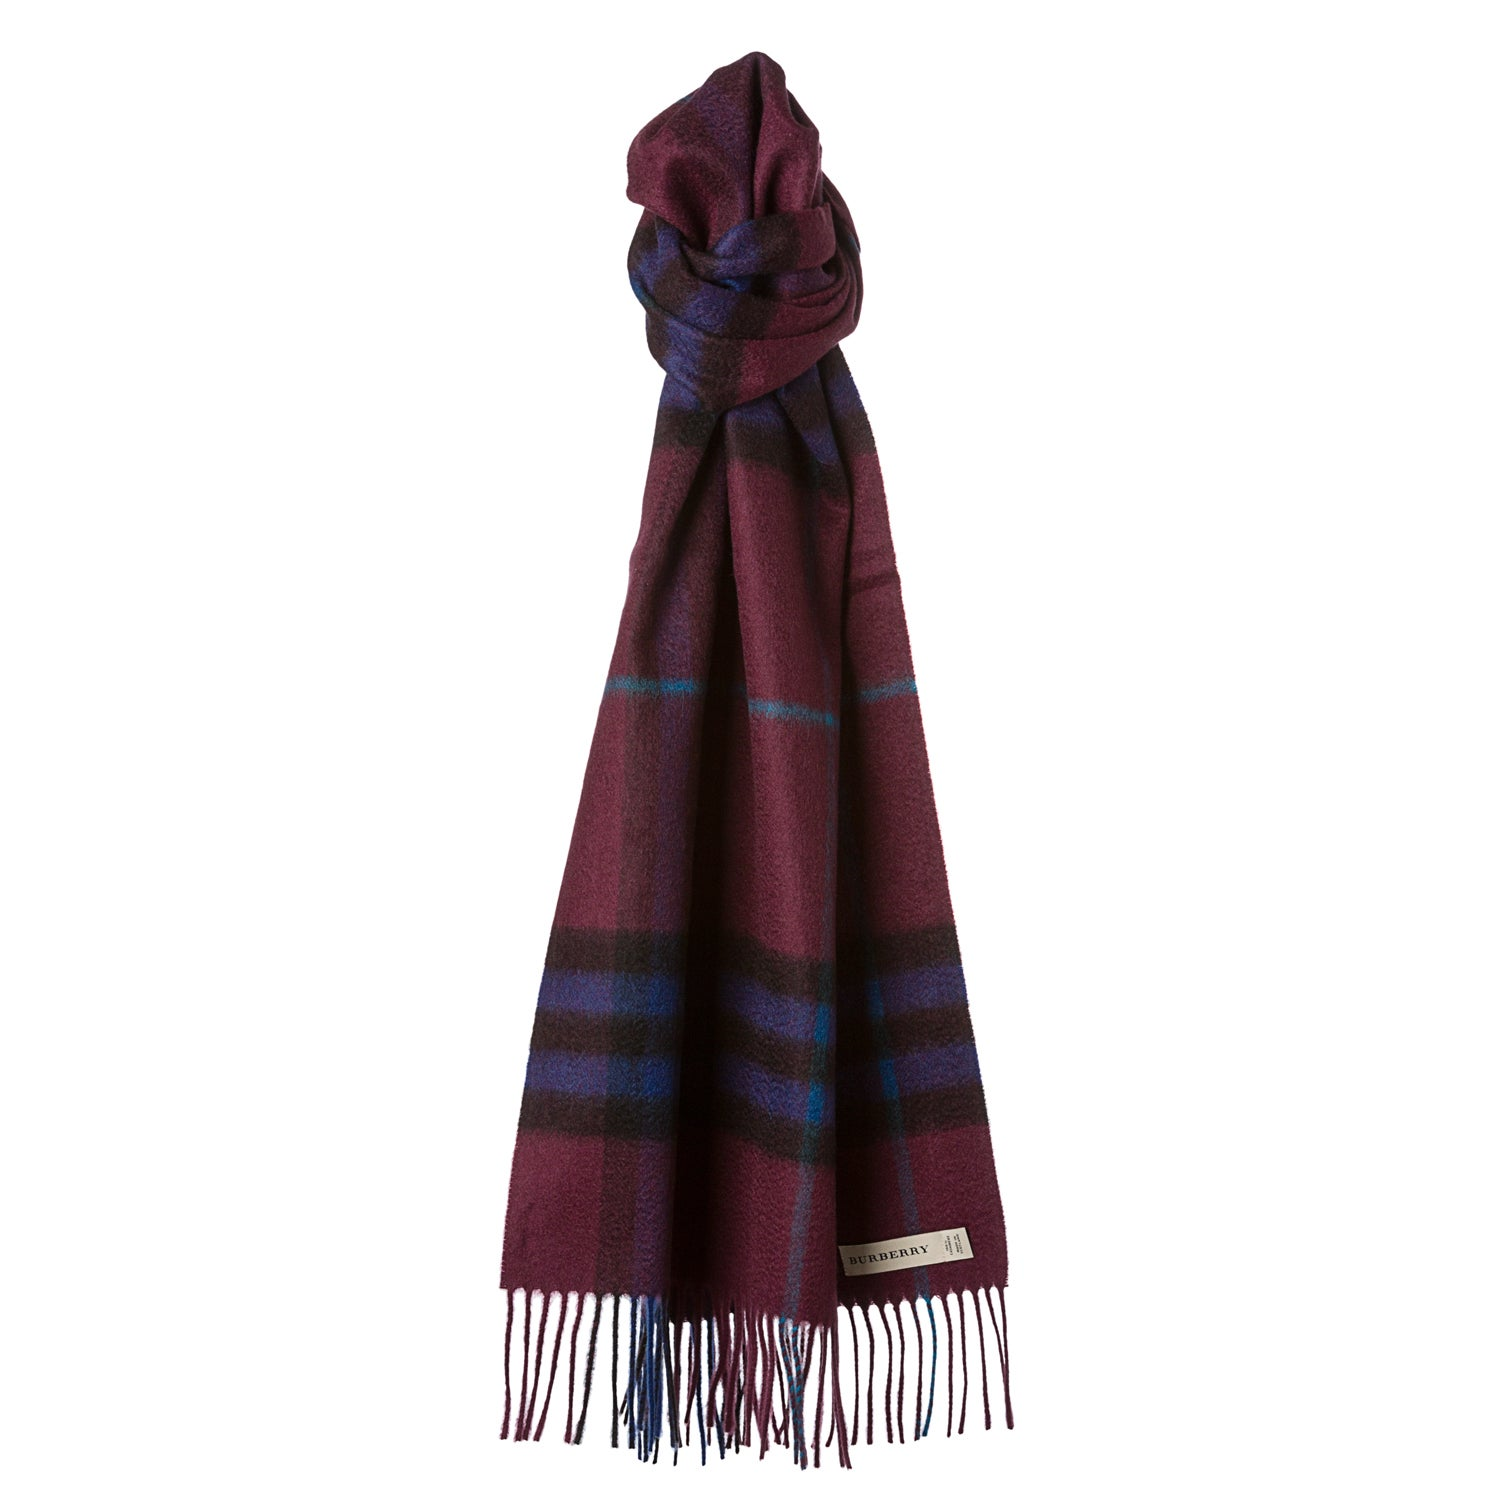 Burberry Burgundy Check Cashmere Scarf  JustCampus Cashmere Burberry Scarves